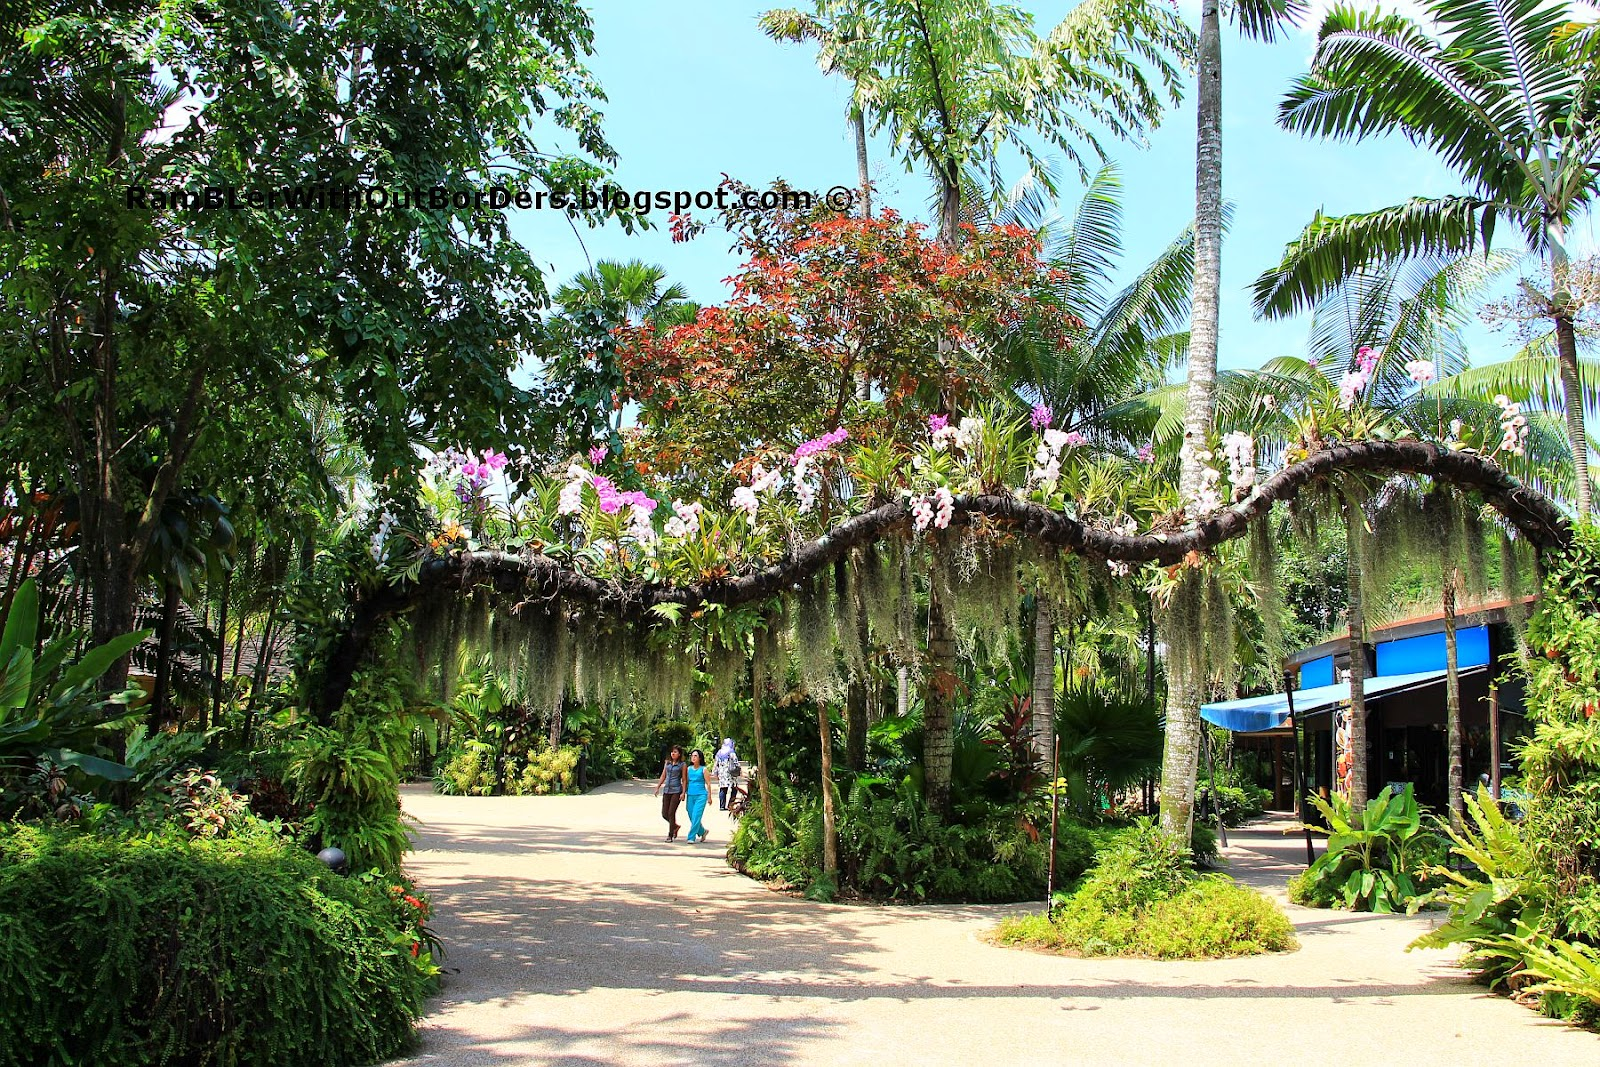 Entrance, Jurong Bird Park, Singapore